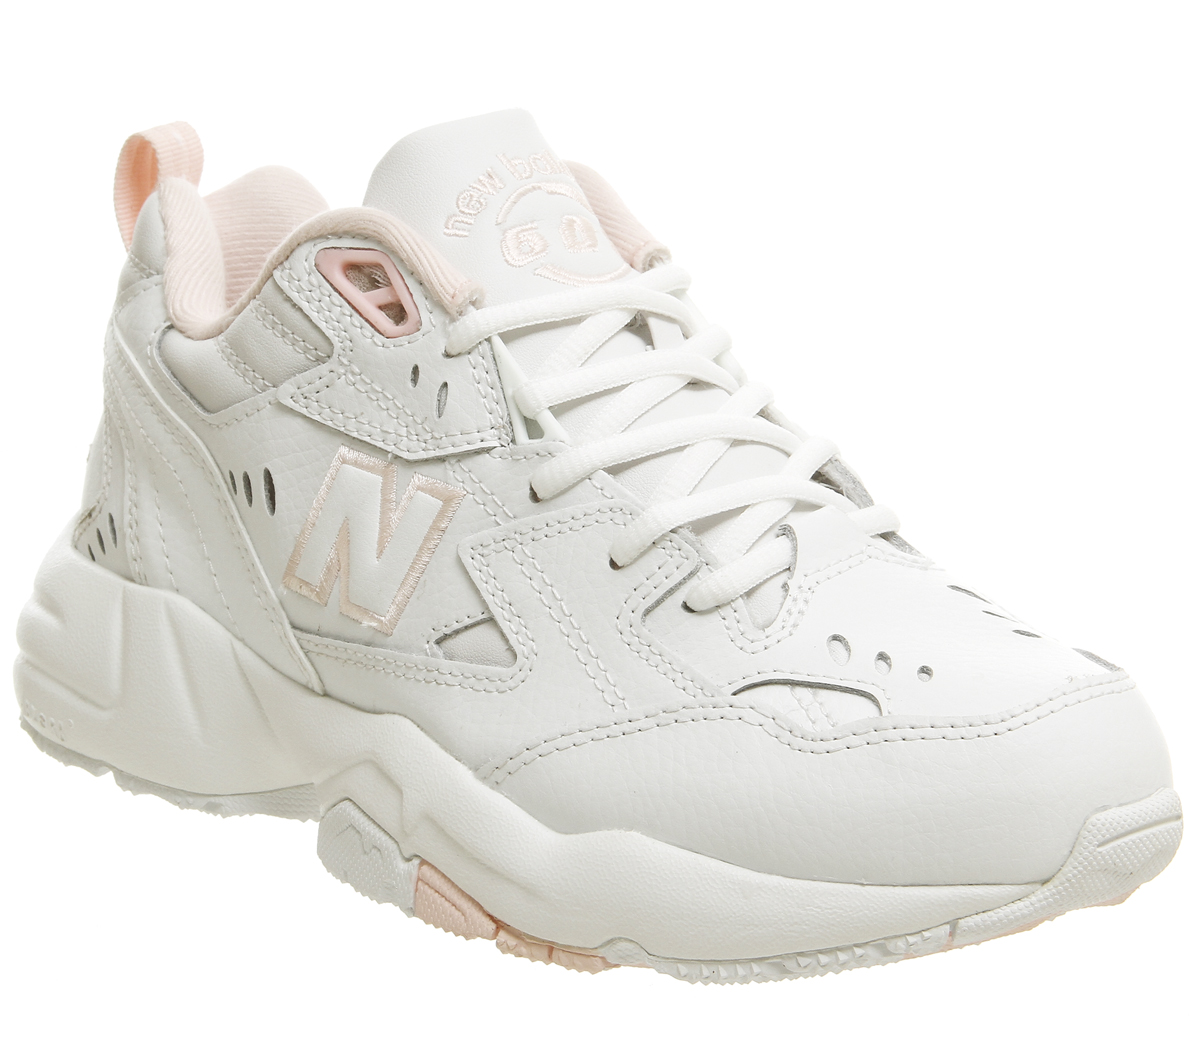 Sentinel Womens New Balance 608 Trainers Cream Pink Trainers Shoes a0cbda32567